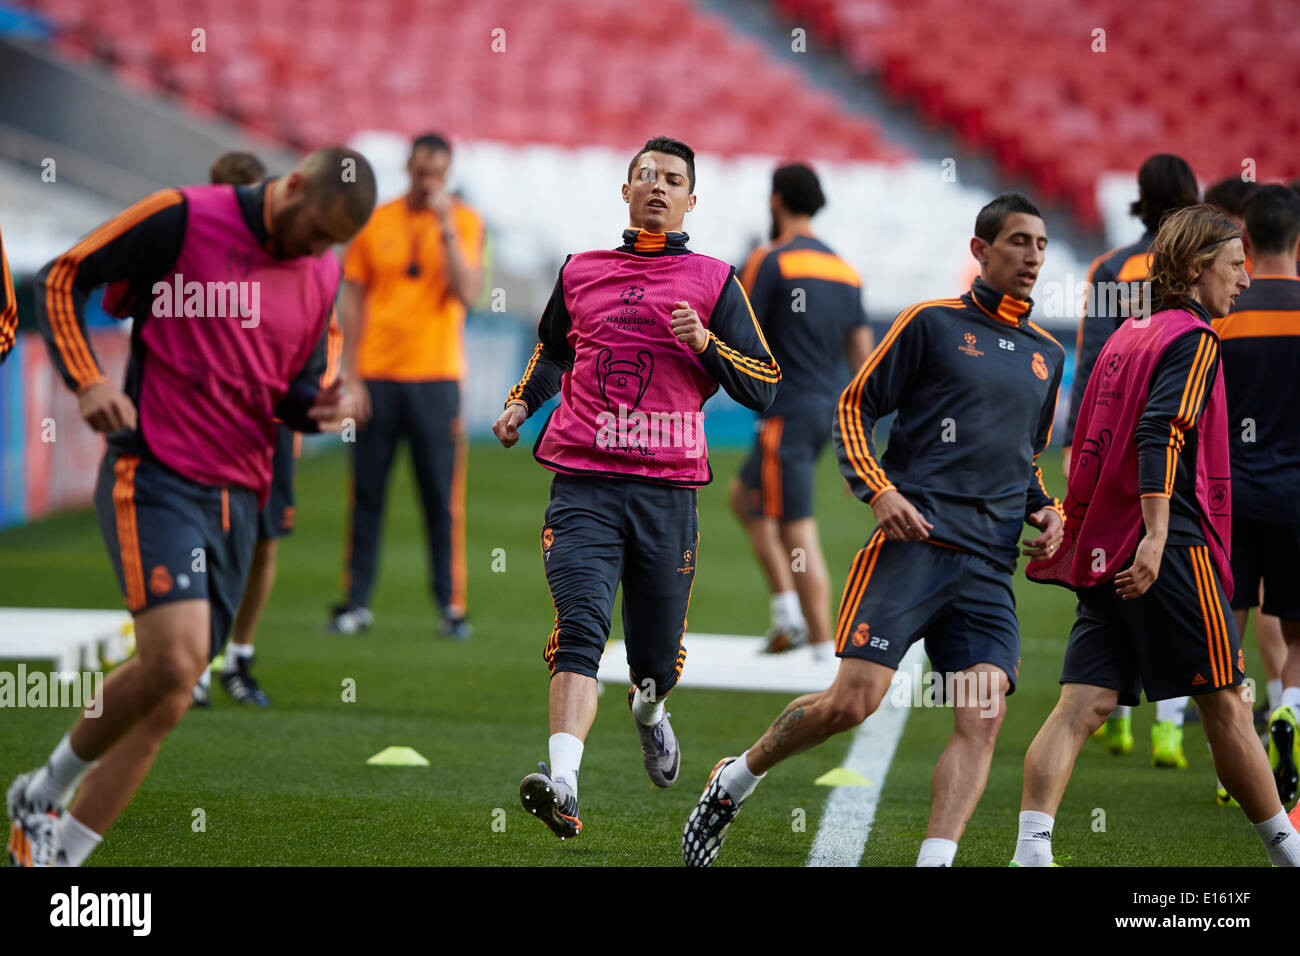 Midfielder Cristiano Ronaldo Of Real Madrid Sprints During